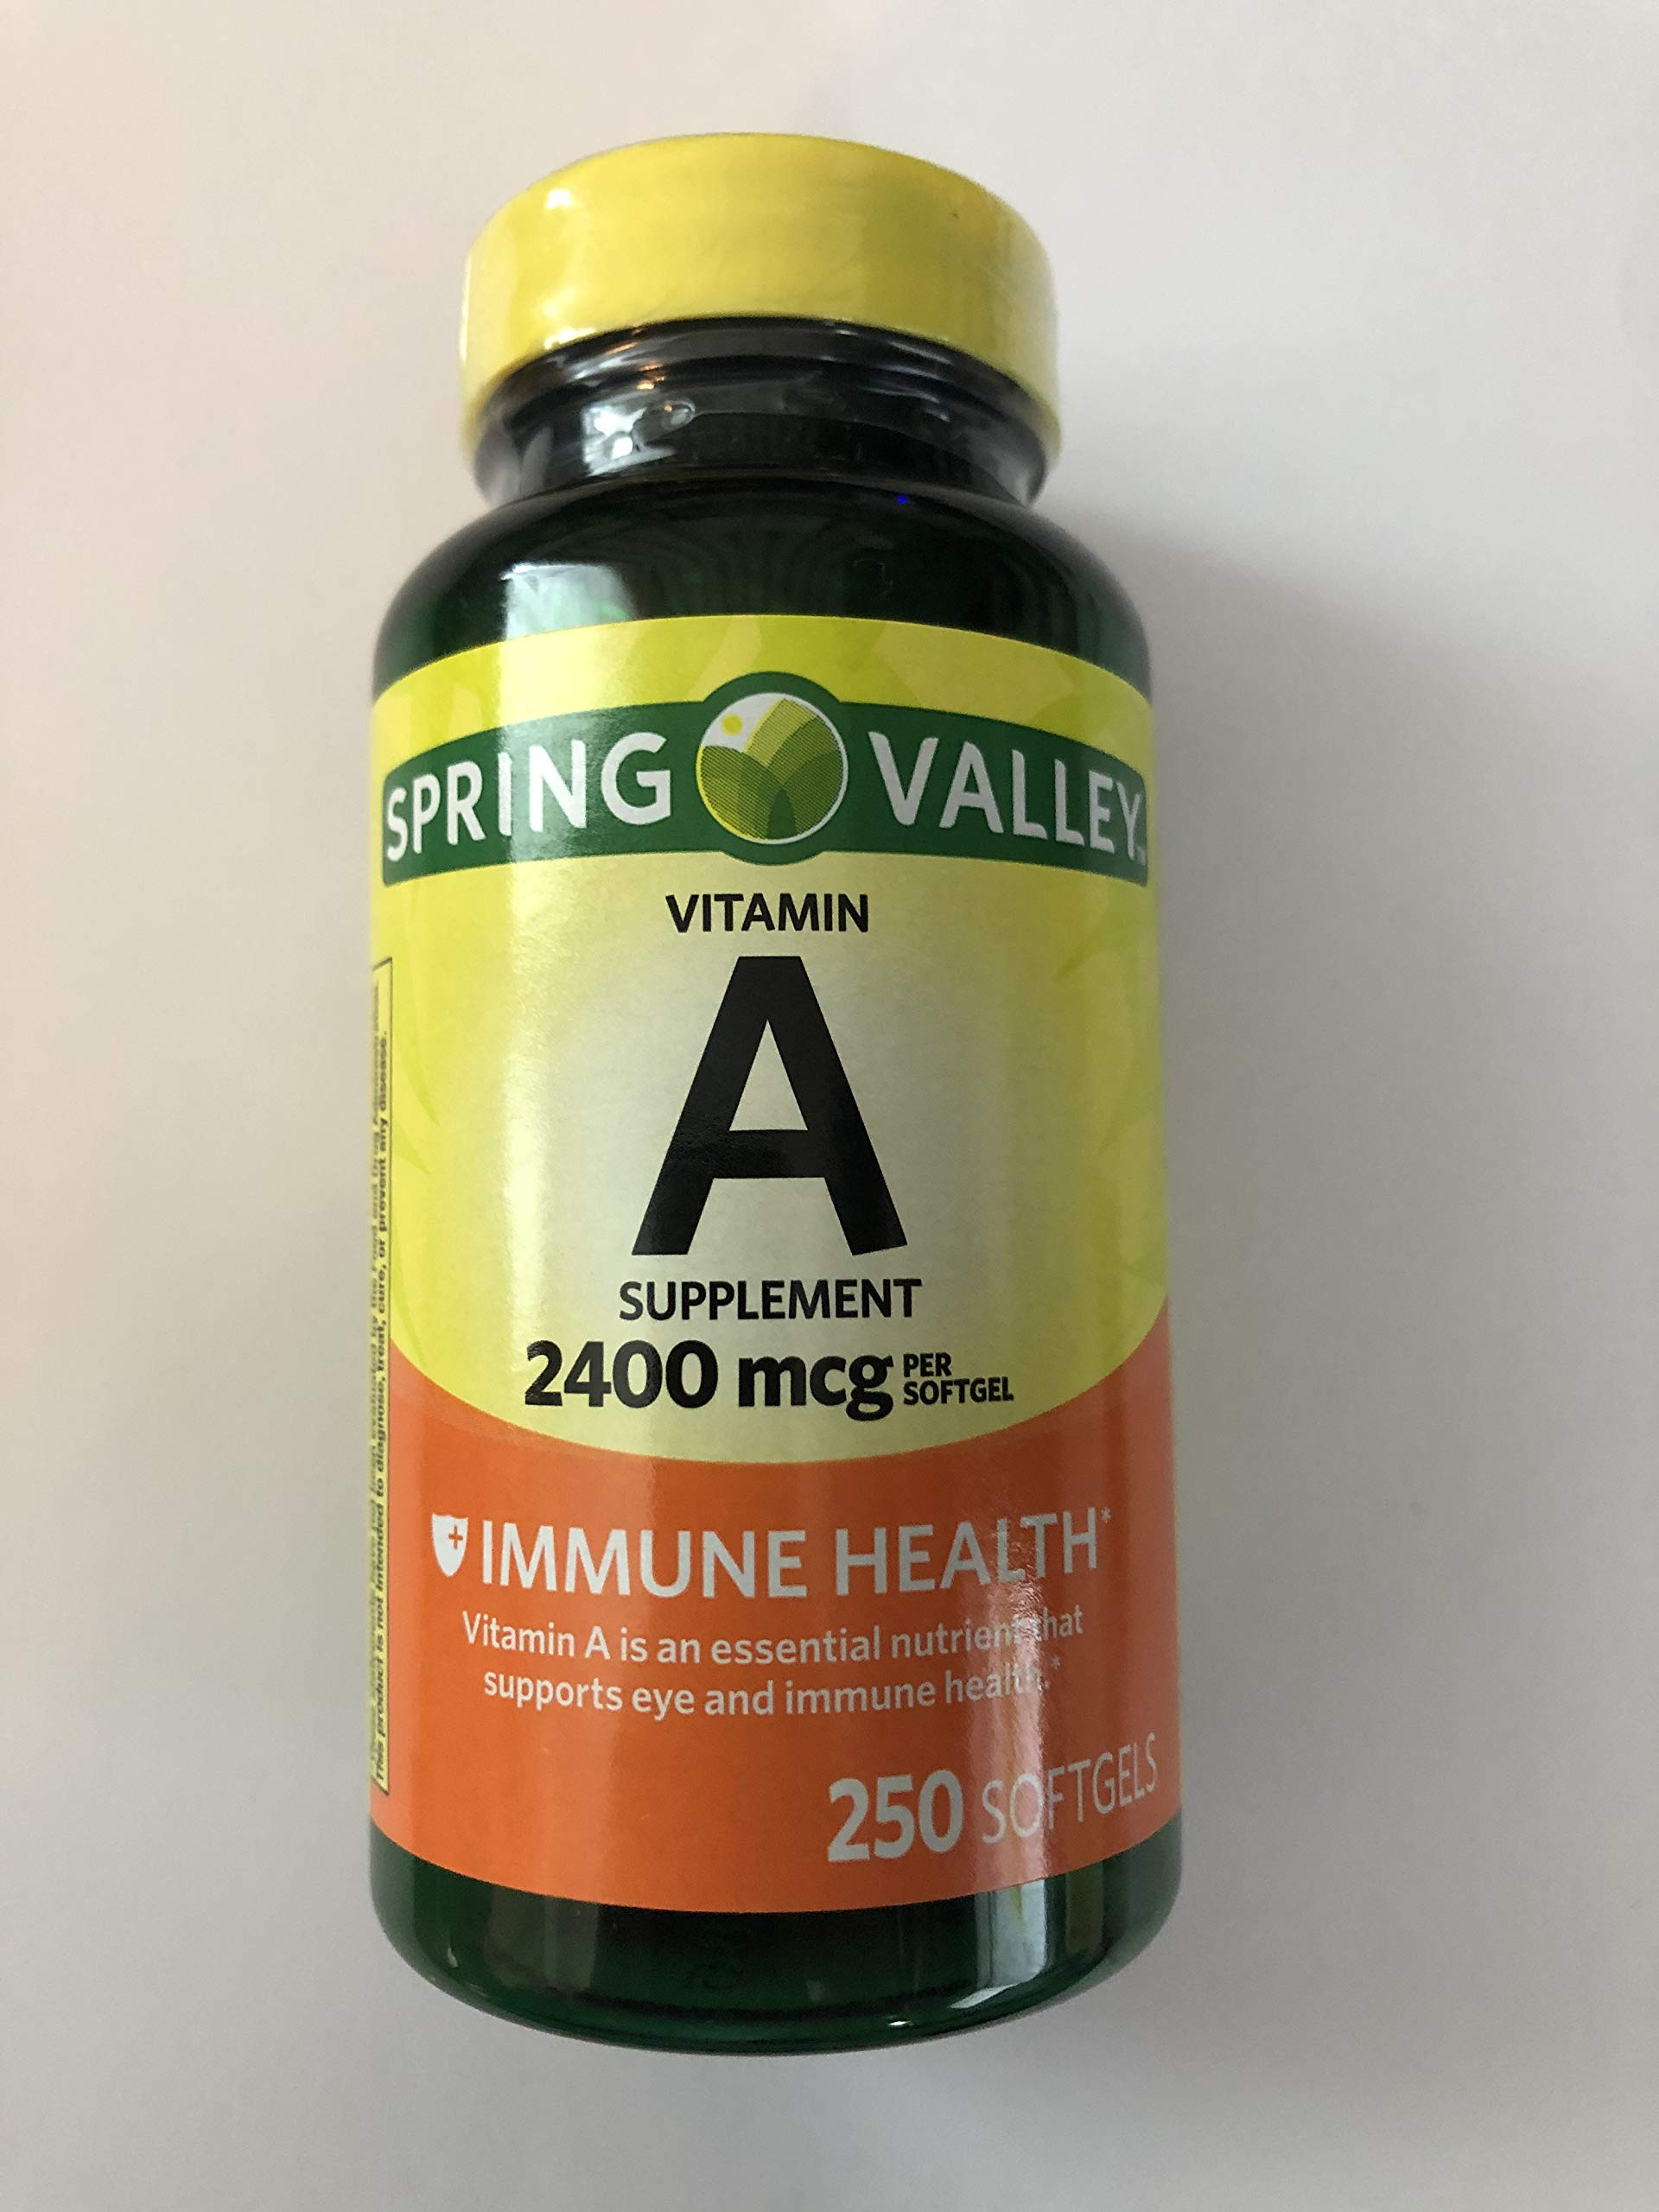 Spring Valley - Vitamin A SUPPLEMENT 2400MCG 250 Softgels